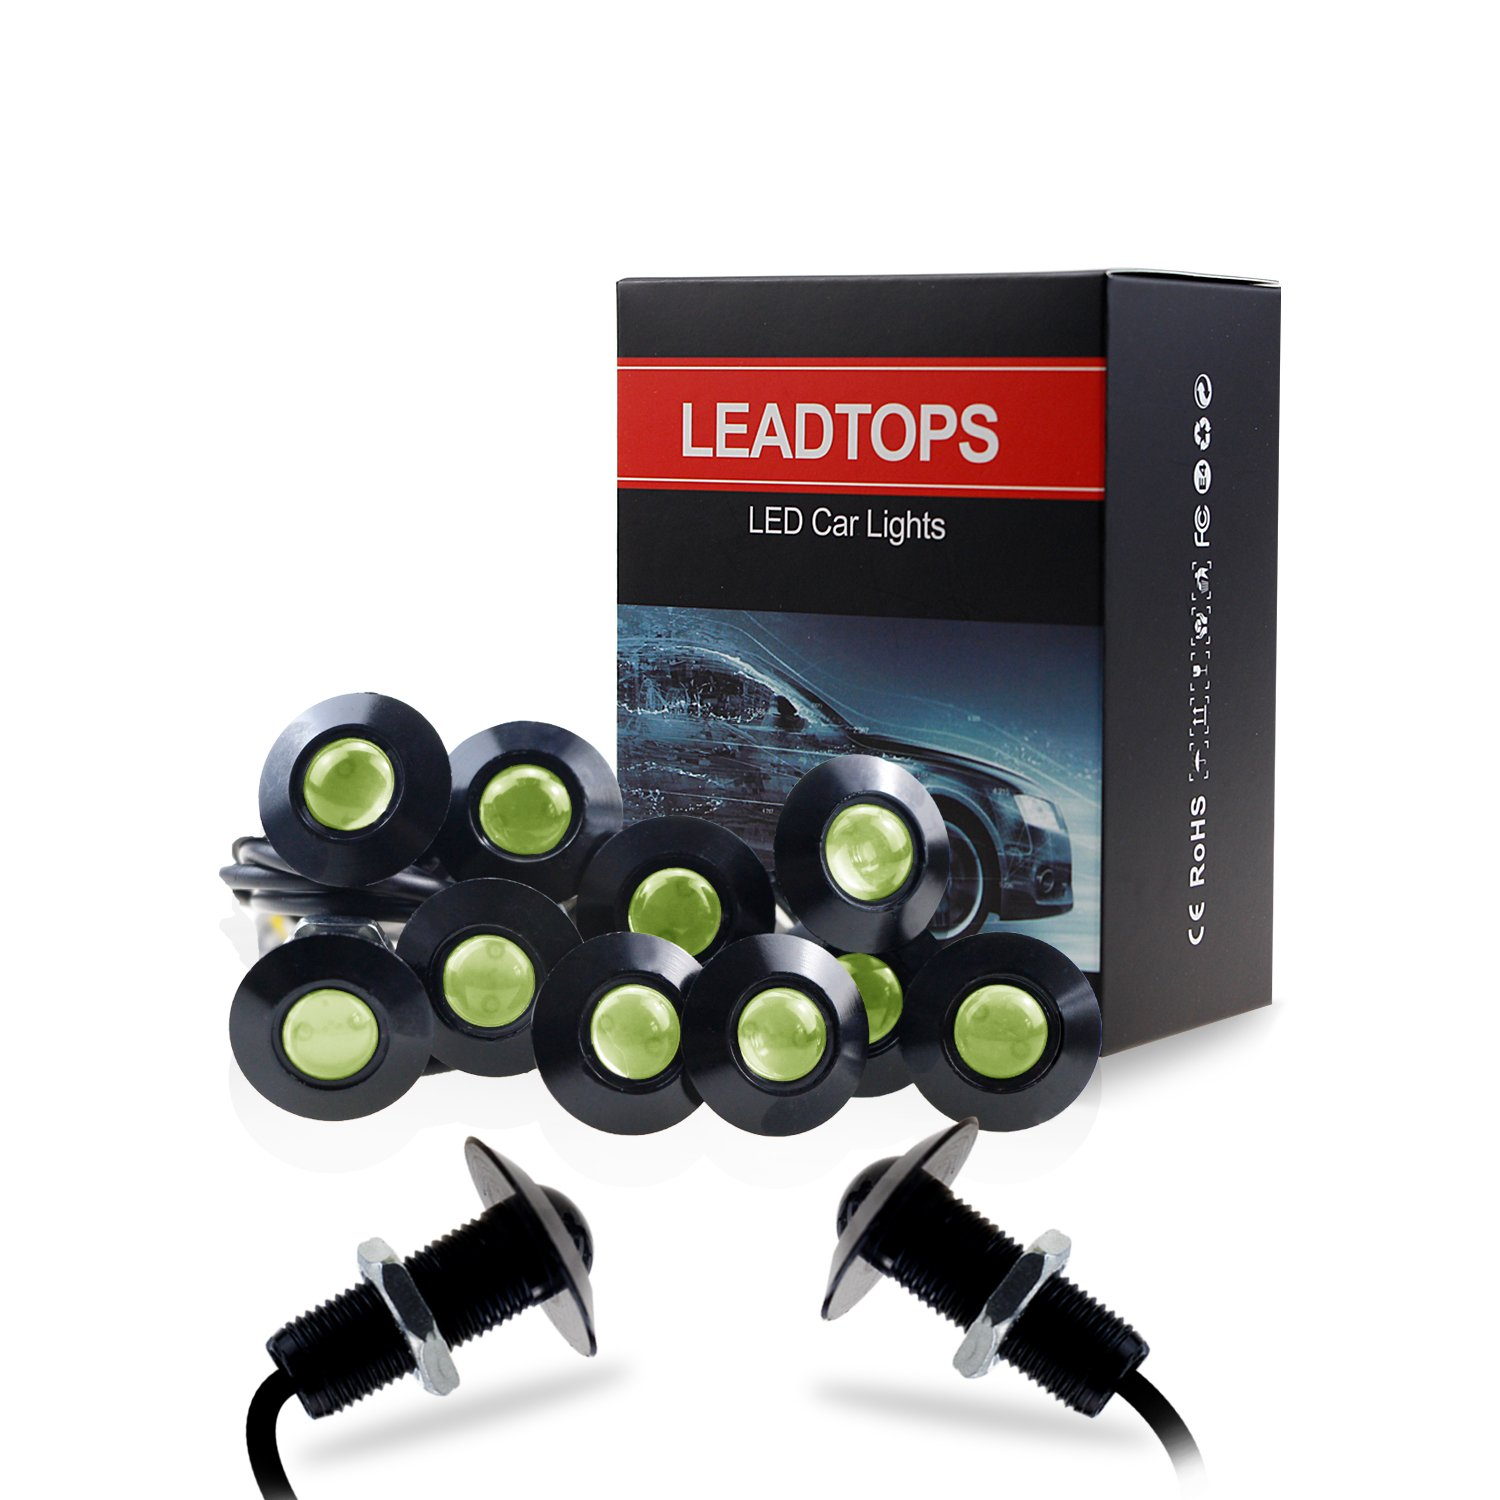 LEADTOPS 10-pack DIY 12V Ultra thin 23mm Eagle Eye Fog Tail DRL Daytime Running Lights (Red, Black) LEDTOP CO. LIMITED